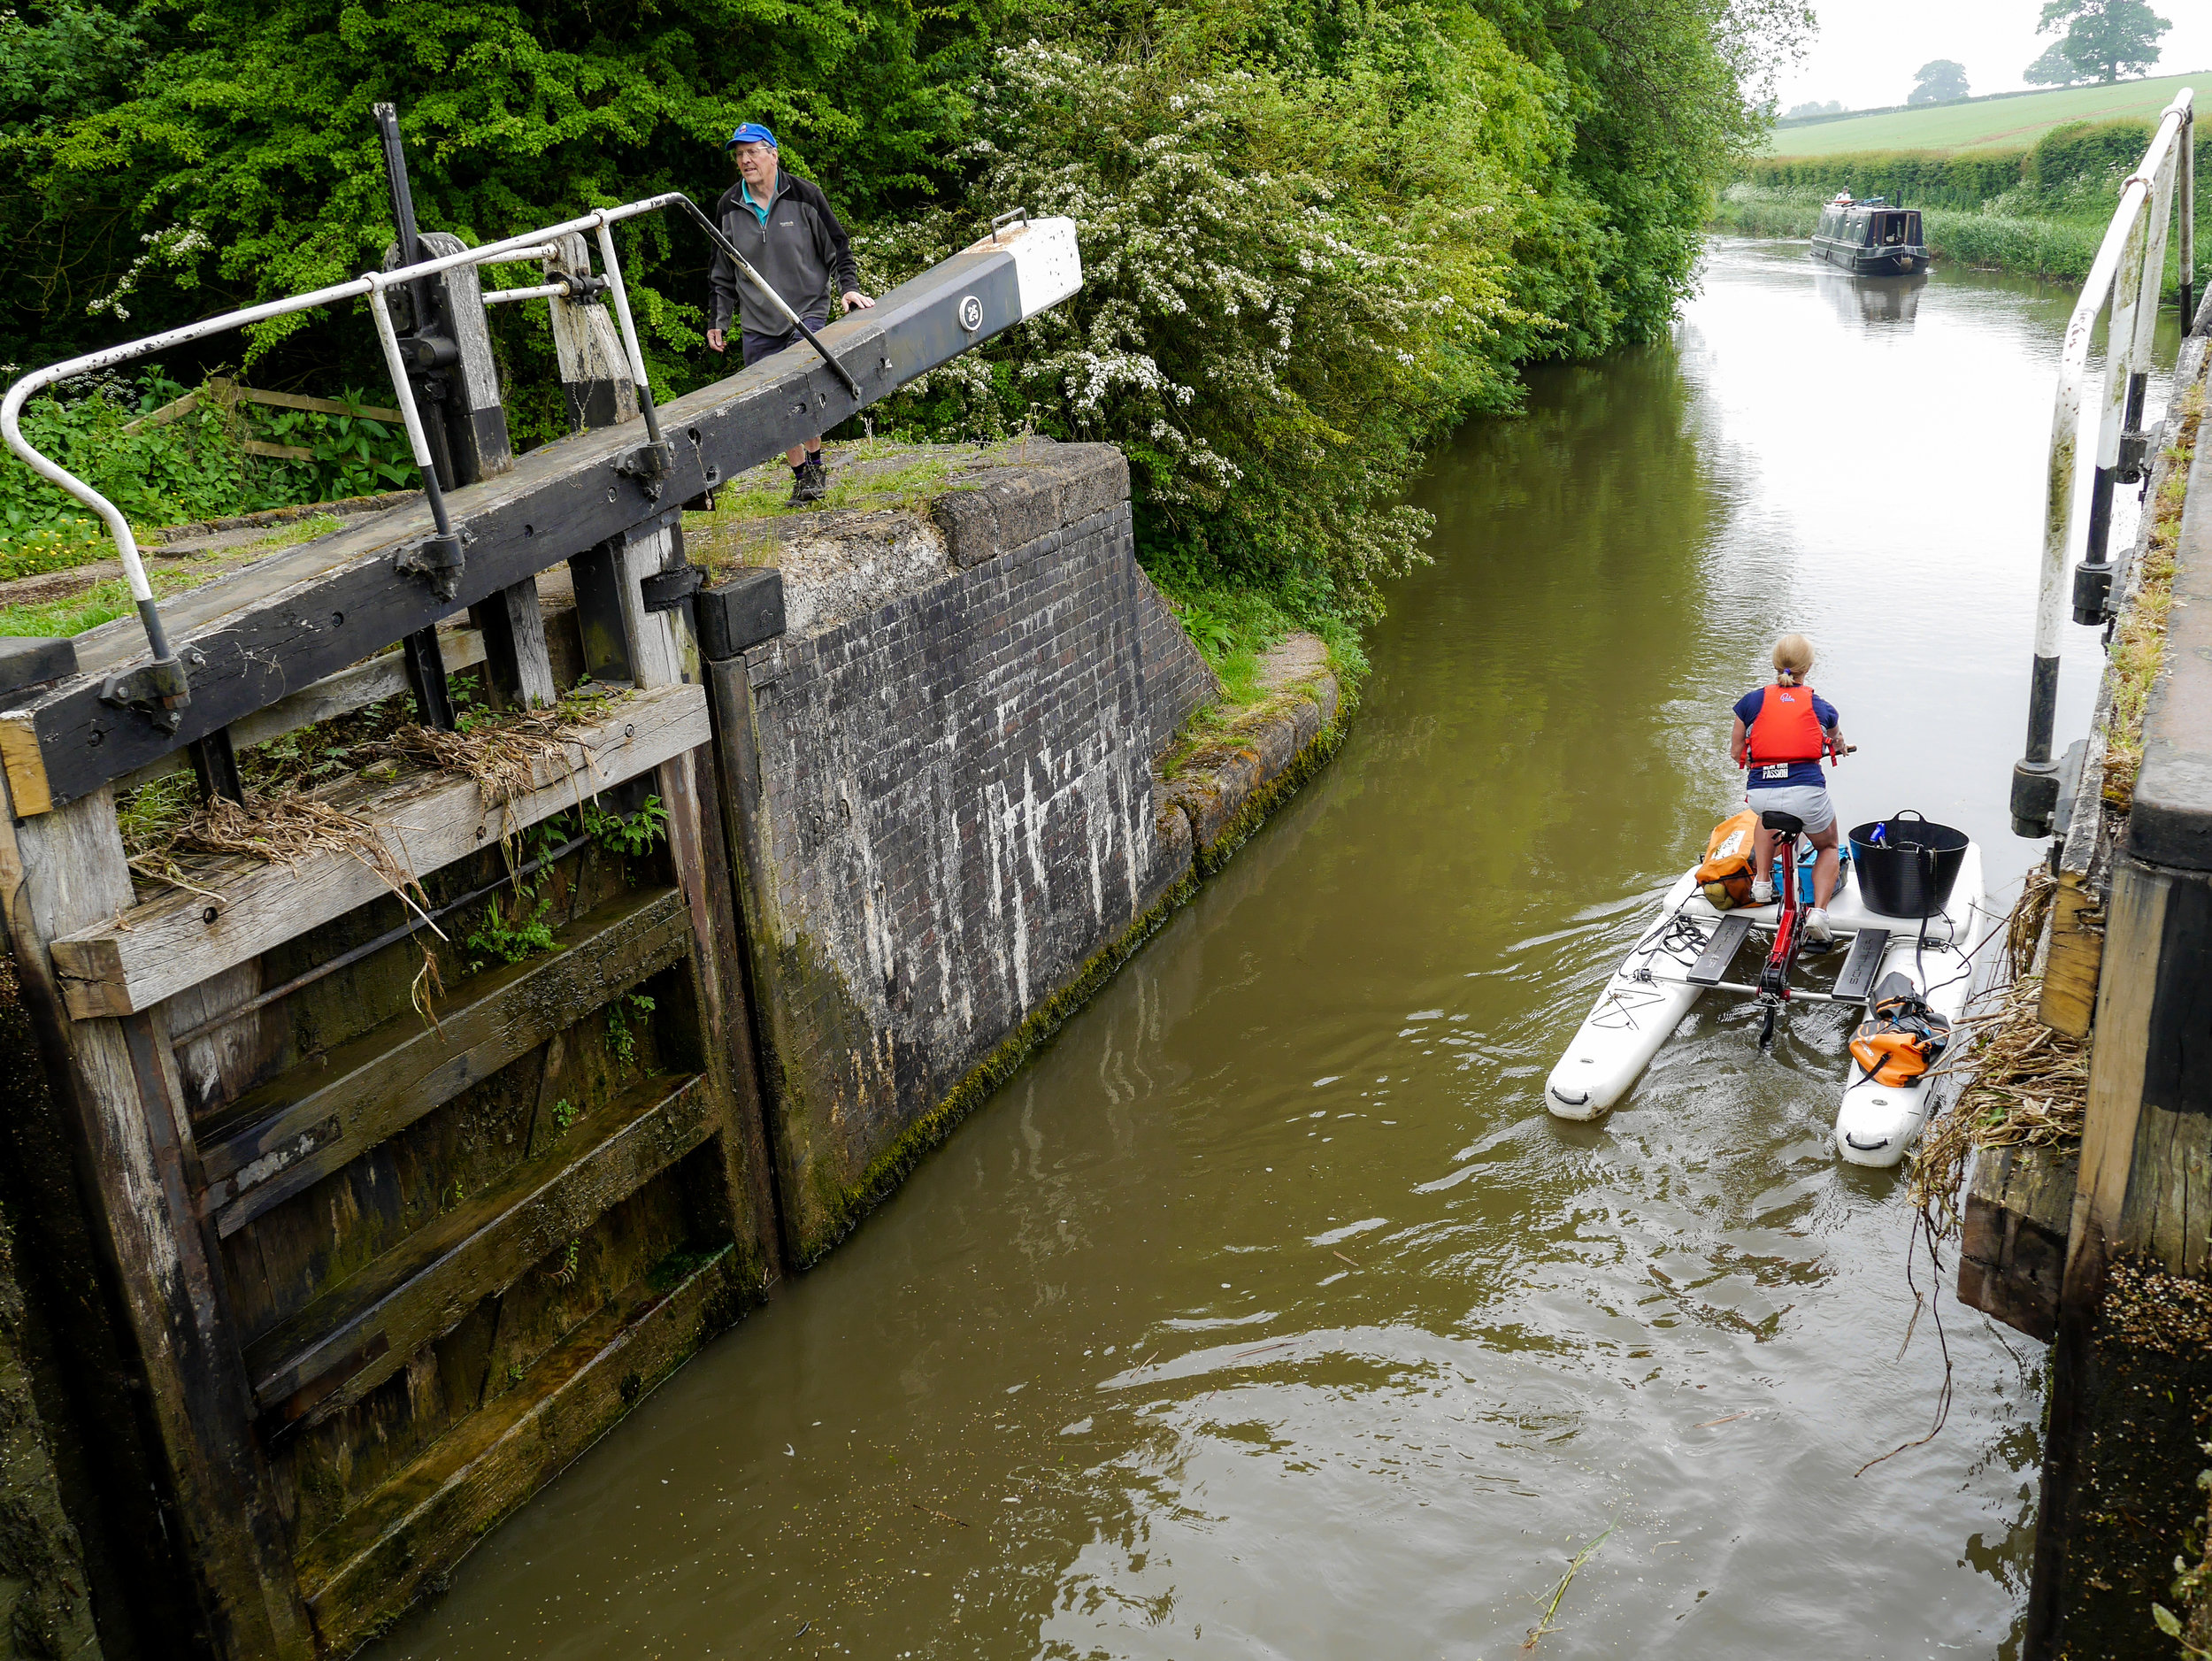 Pauline Cornthwaite leaves a lock on the Leicester Canal